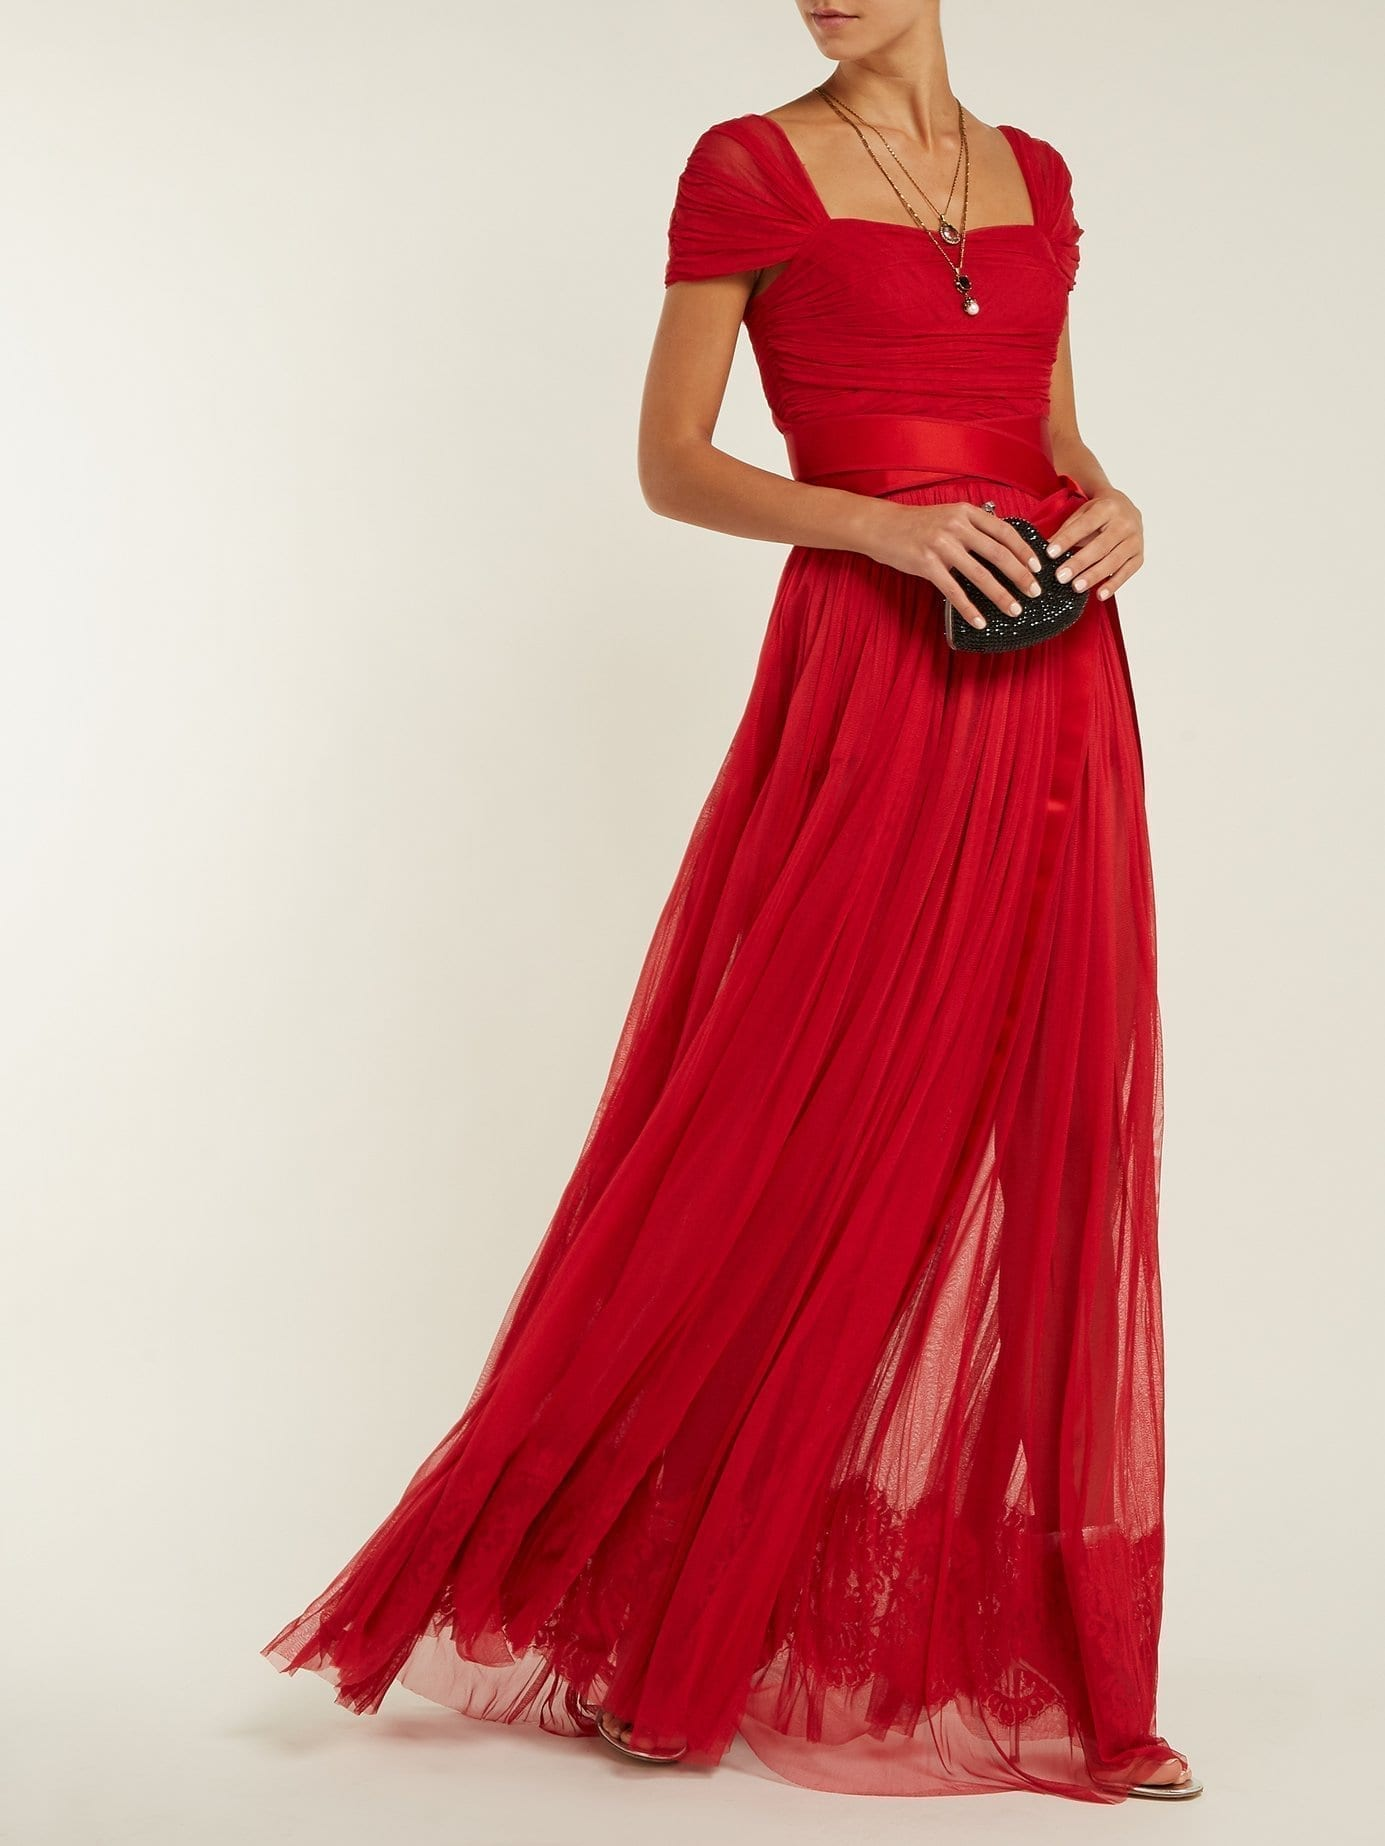 1091078abe4 DOLCE   GABBANA Layered Silk Tulle Crimson Red Gown - We Select Dresses